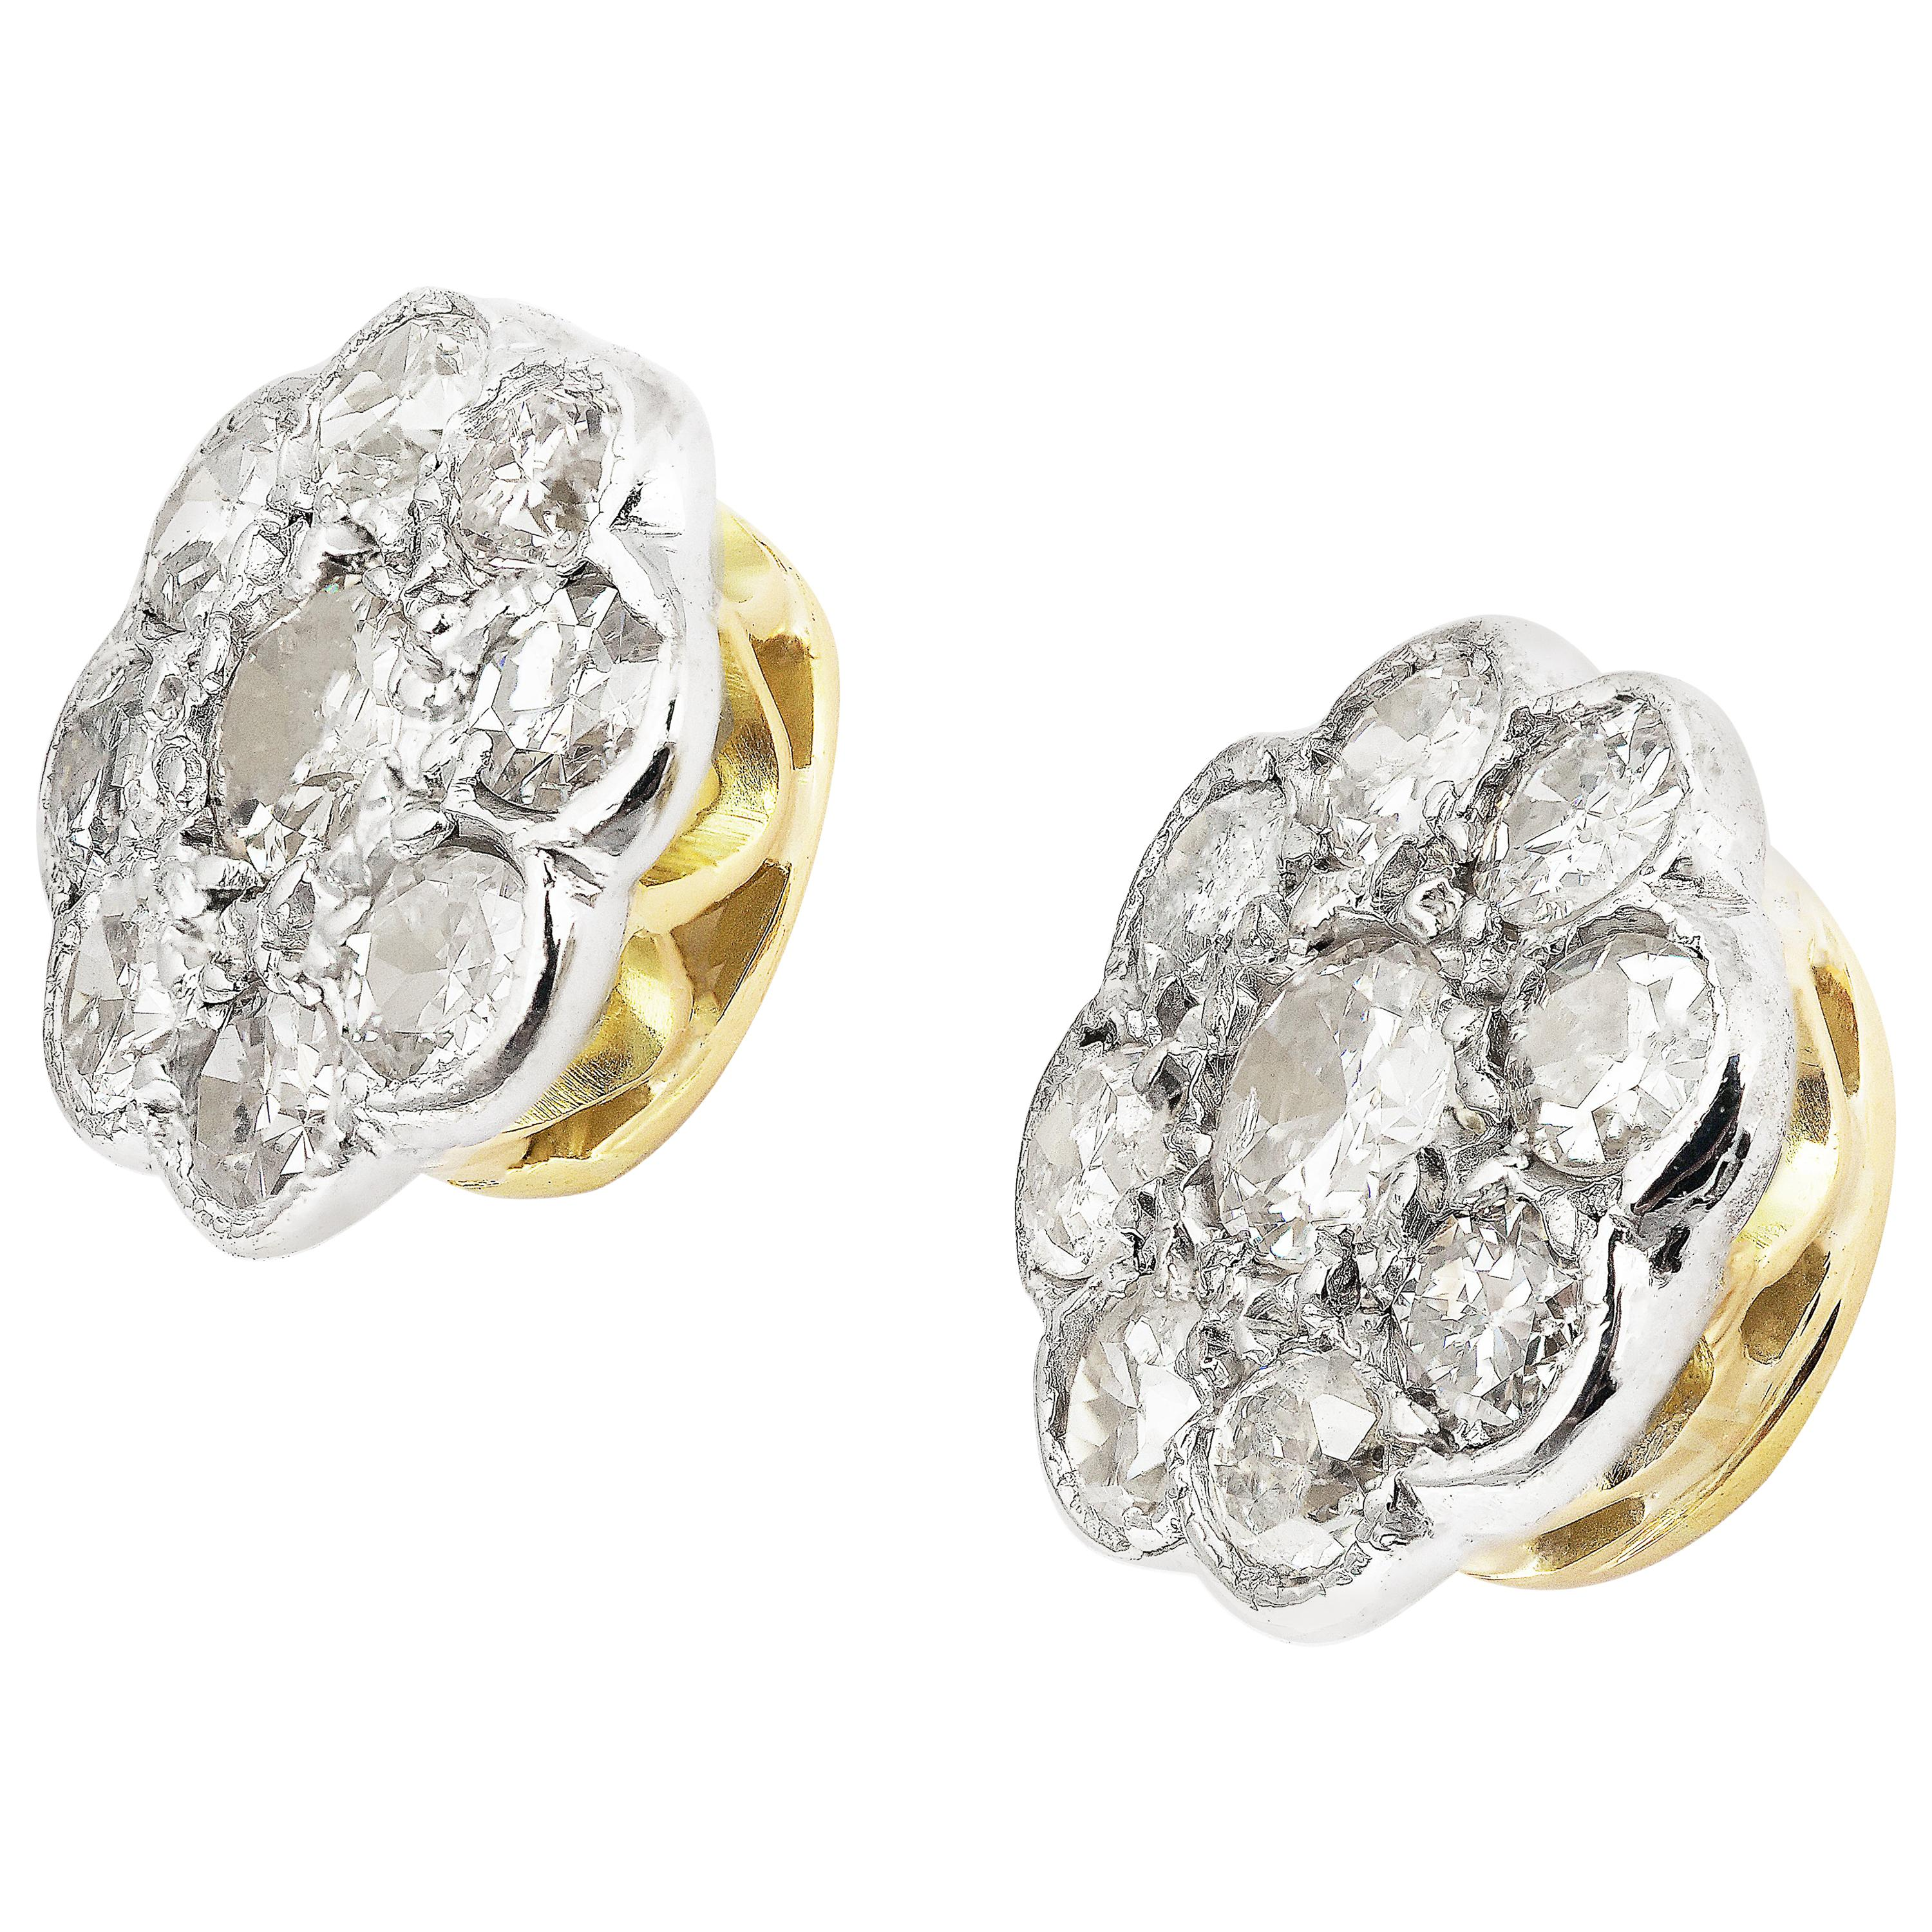 2e0dd74d3243f Victorian Earrings - 574 For Sale at 1stdibs